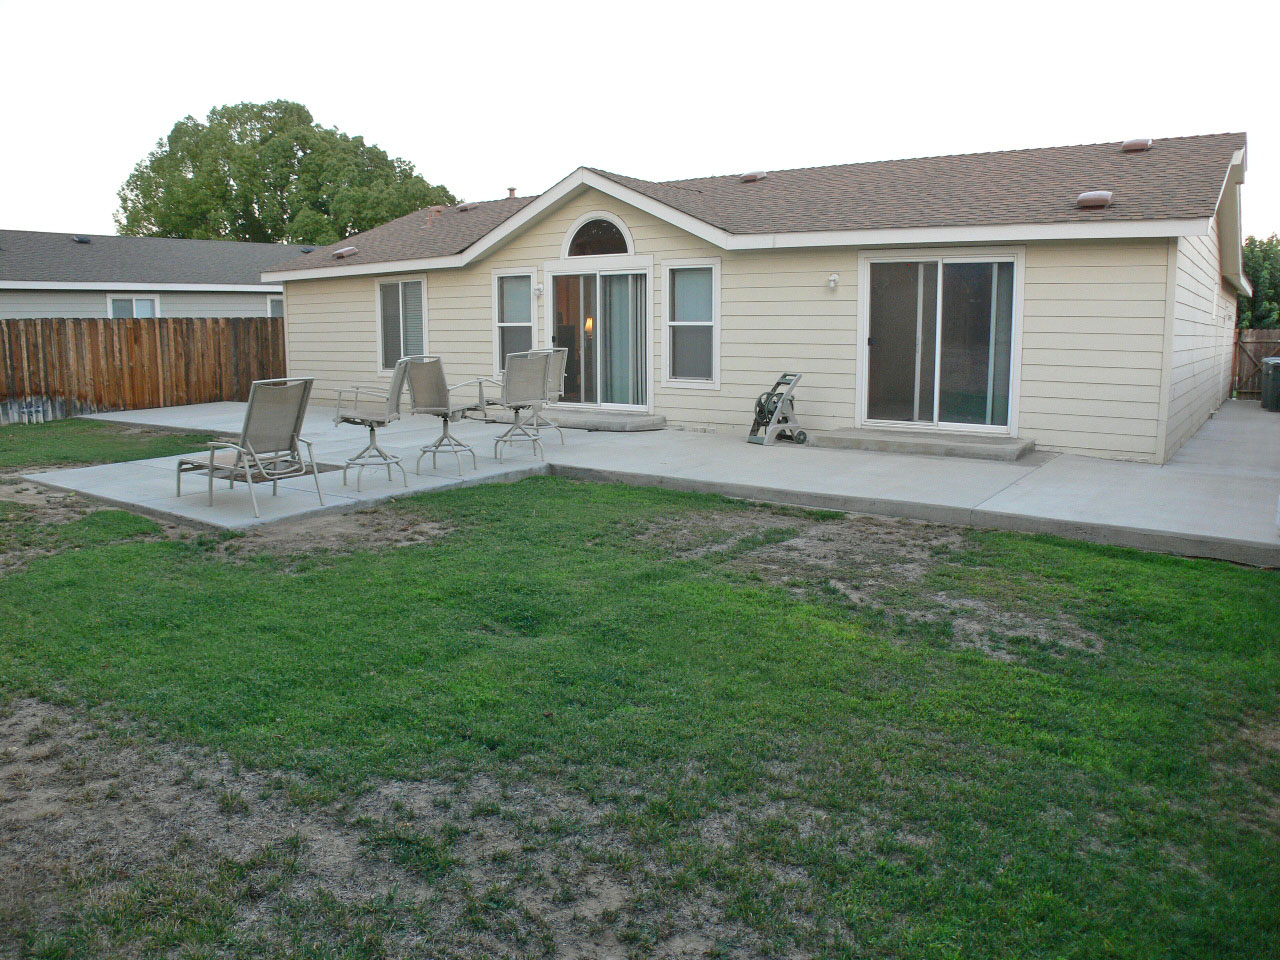 elsinore chat rooms Hire the best addition contractors in lake elsinore, ca on homeadvisor compare homeowner reviews from 5 top lake elsinore build an addition services get quotes & book instantly.